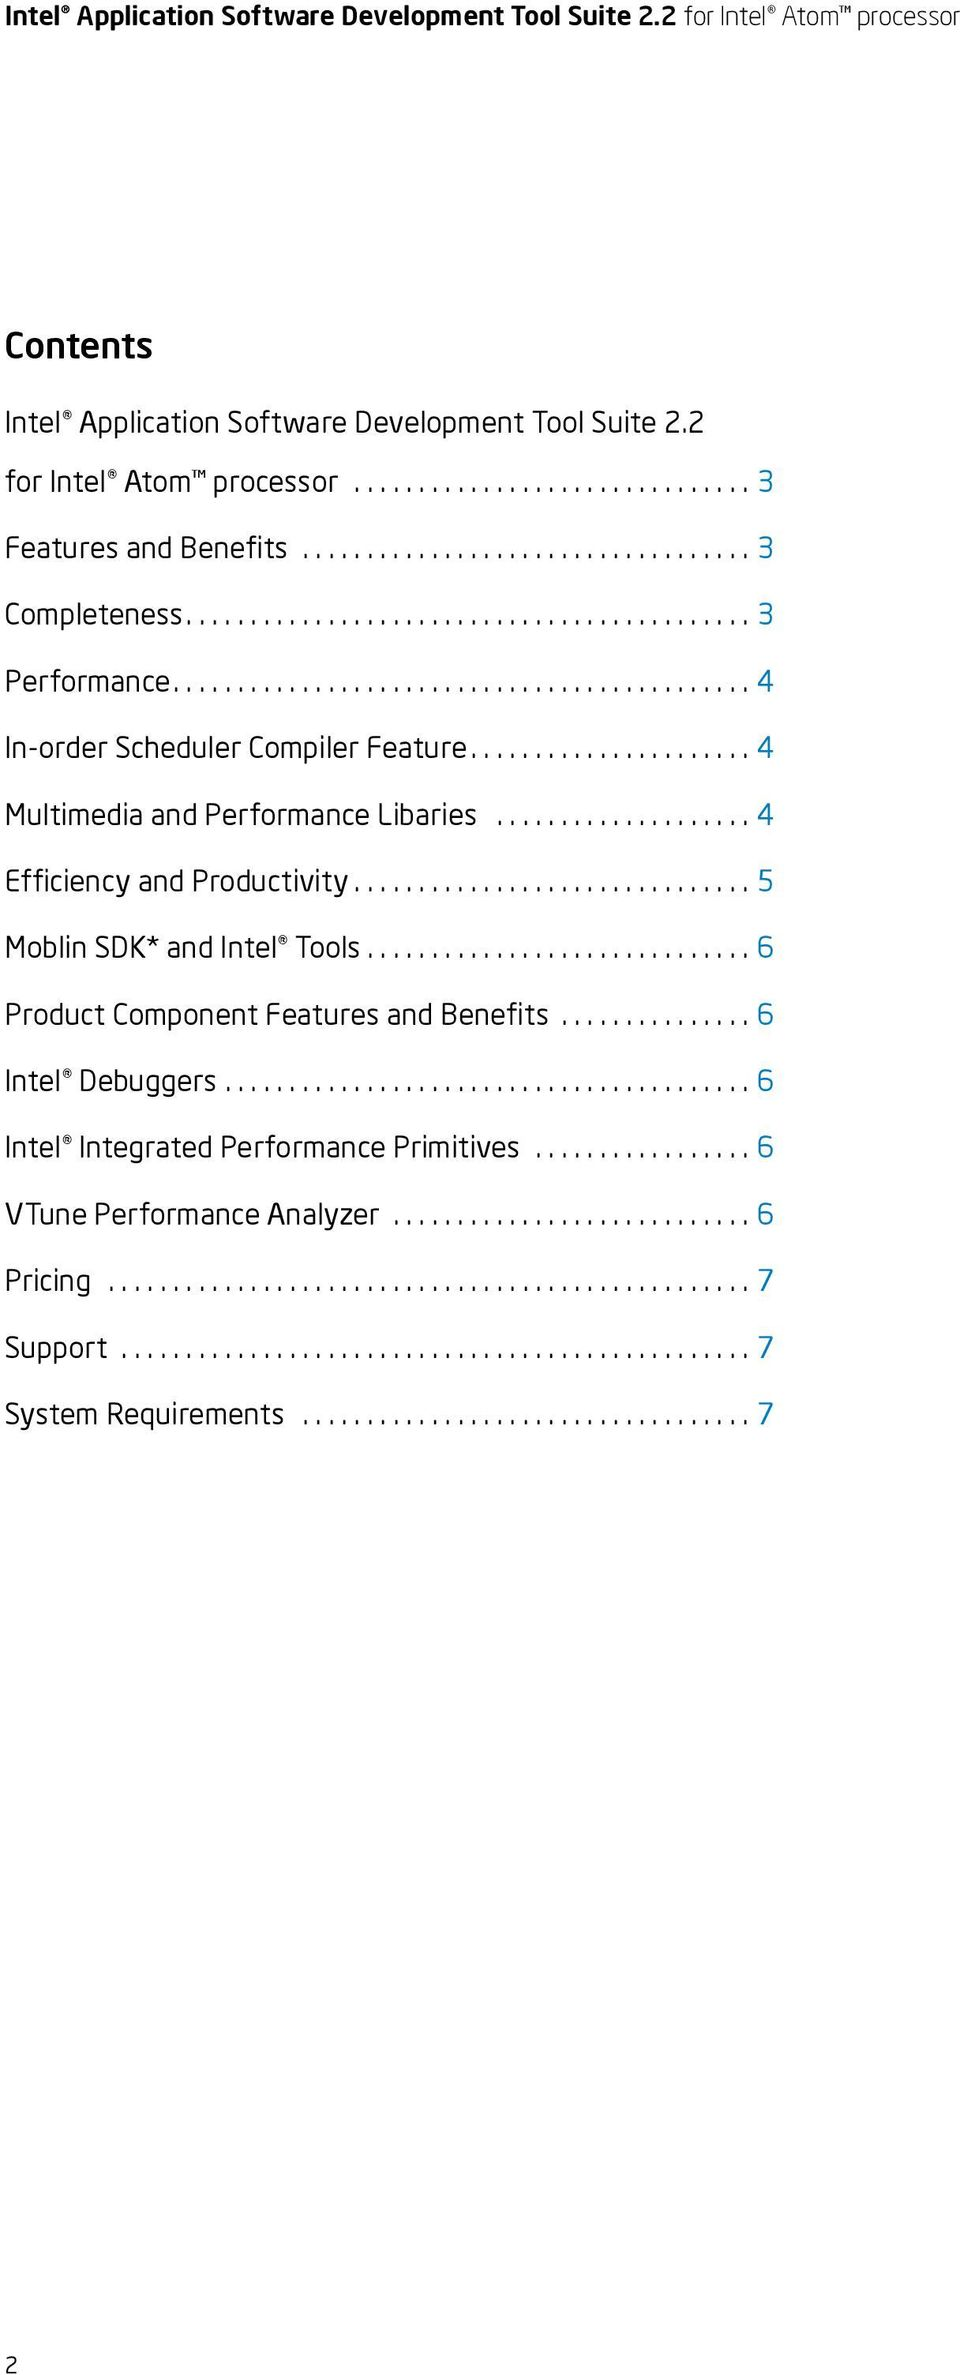 .............................. 5 Moblin SDK* and Tools.............................. 6 Product Component Features and Benefits............... 6 Debuggers......................................... 6 Integrated Performance Primitives.